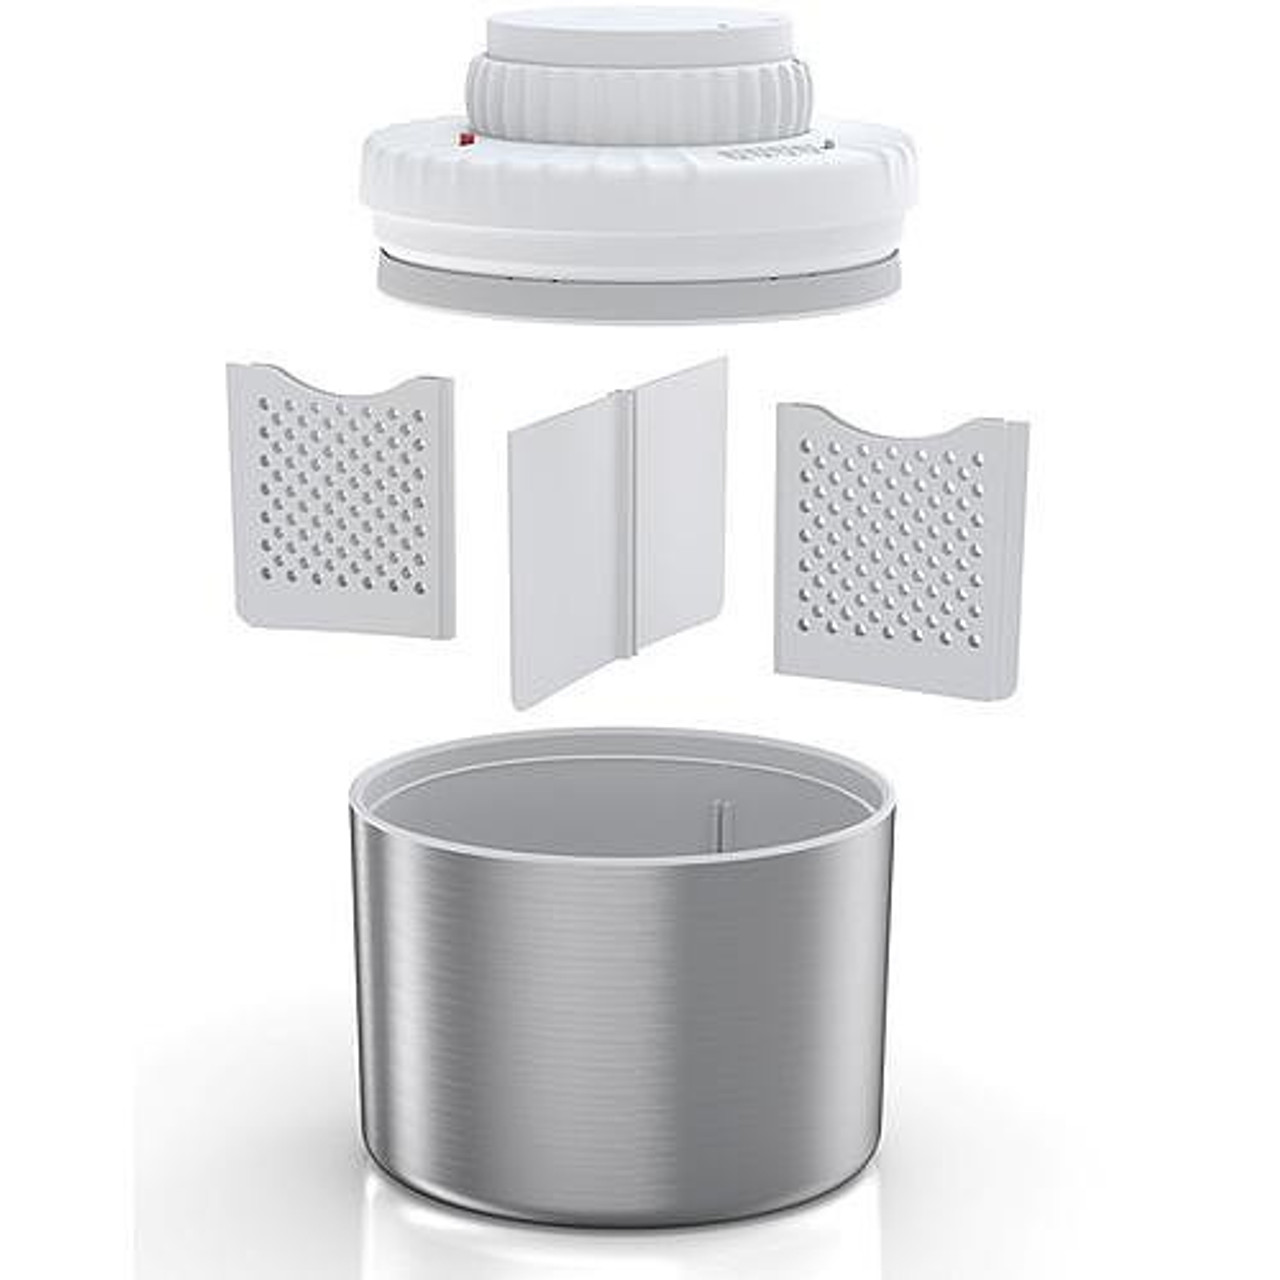 SneakGuard Combi-Fresh Smell Proof Discreet Storage Container